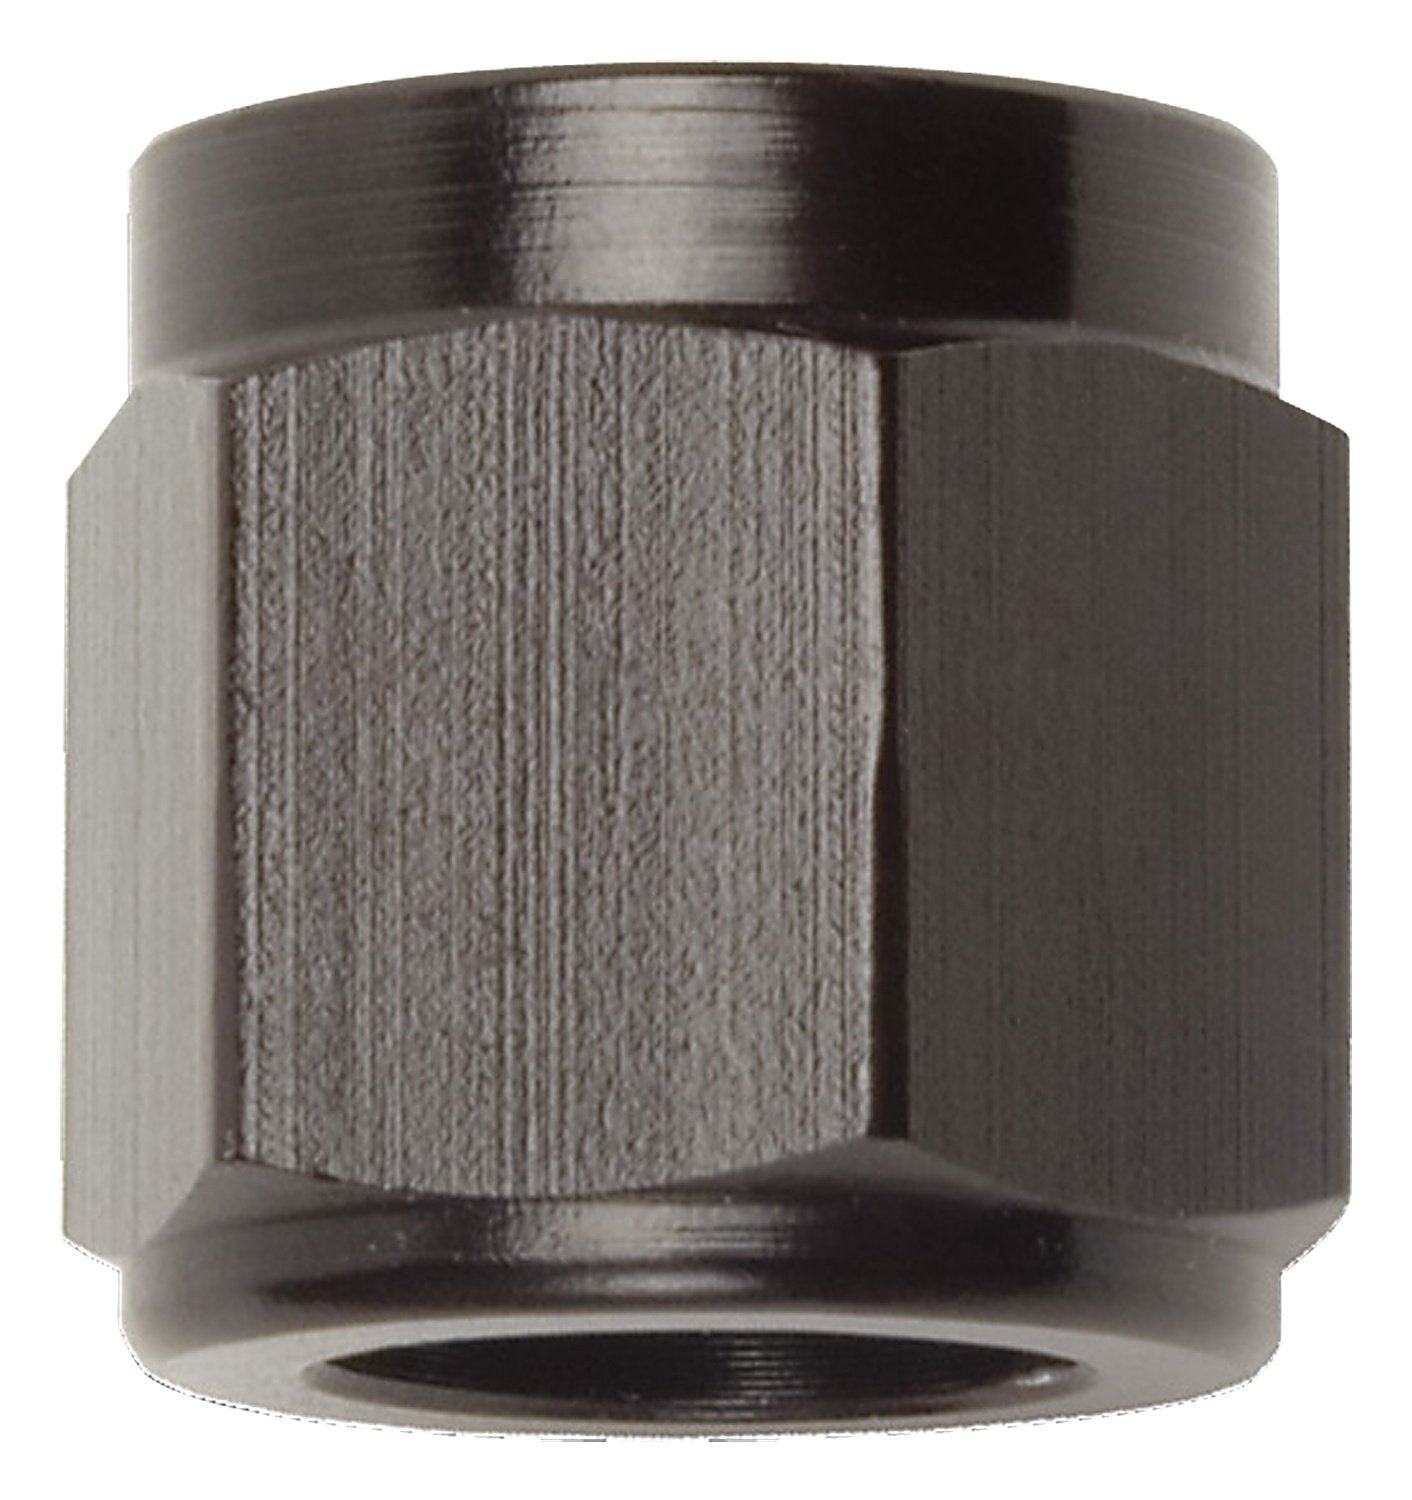 Russell by Edelbrock 660593 Black -10 AN Tube Nut RUS-660593